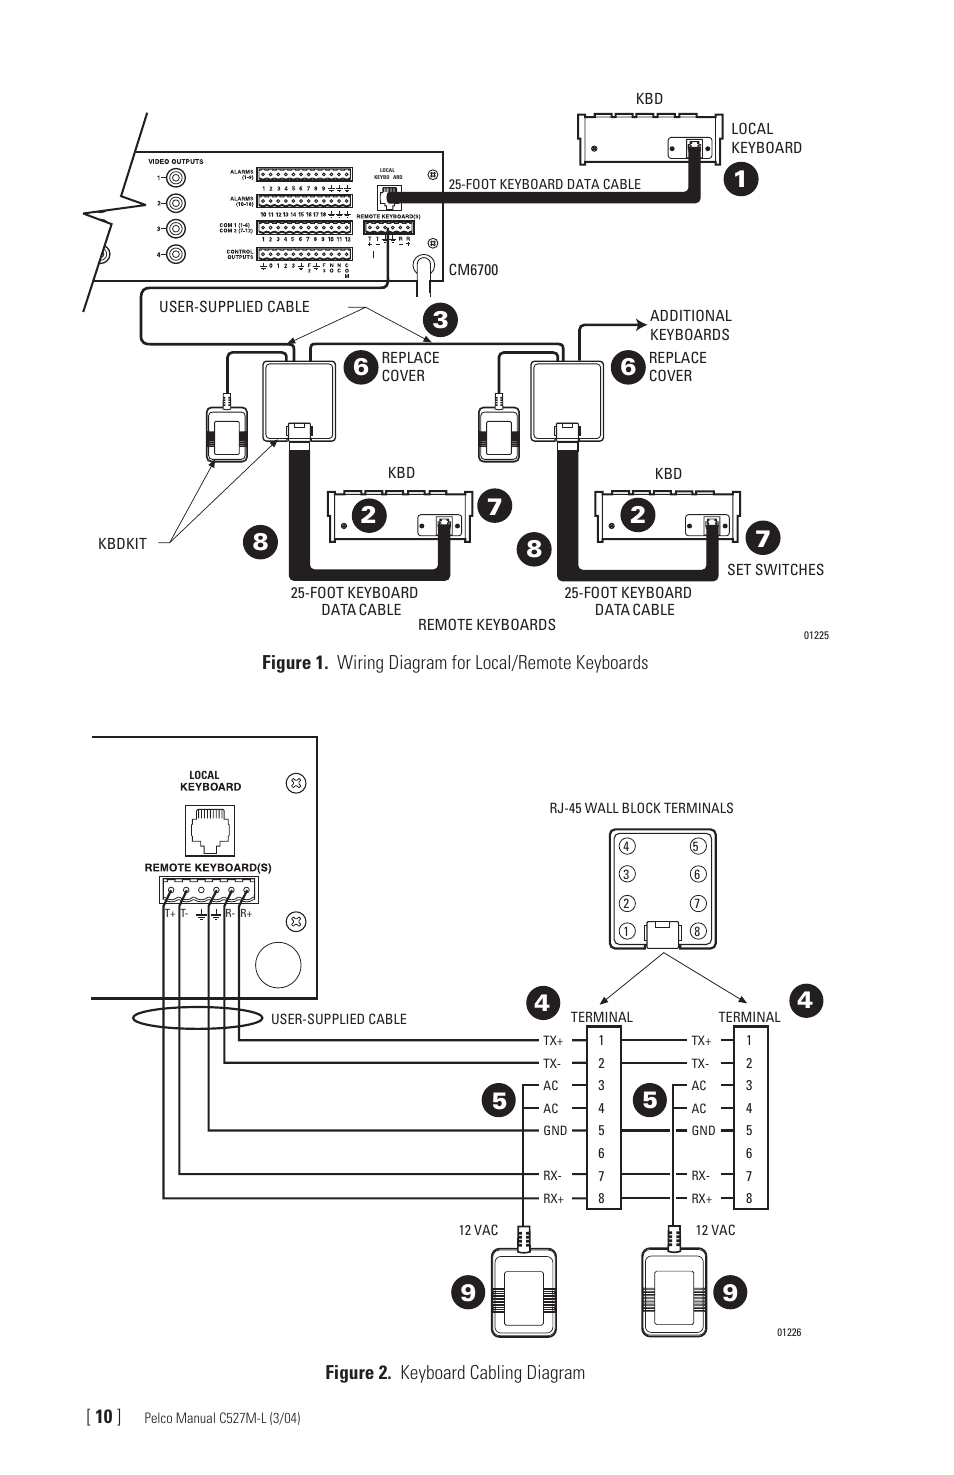 pelco keyboard wiring diagram complete wiring diagrams